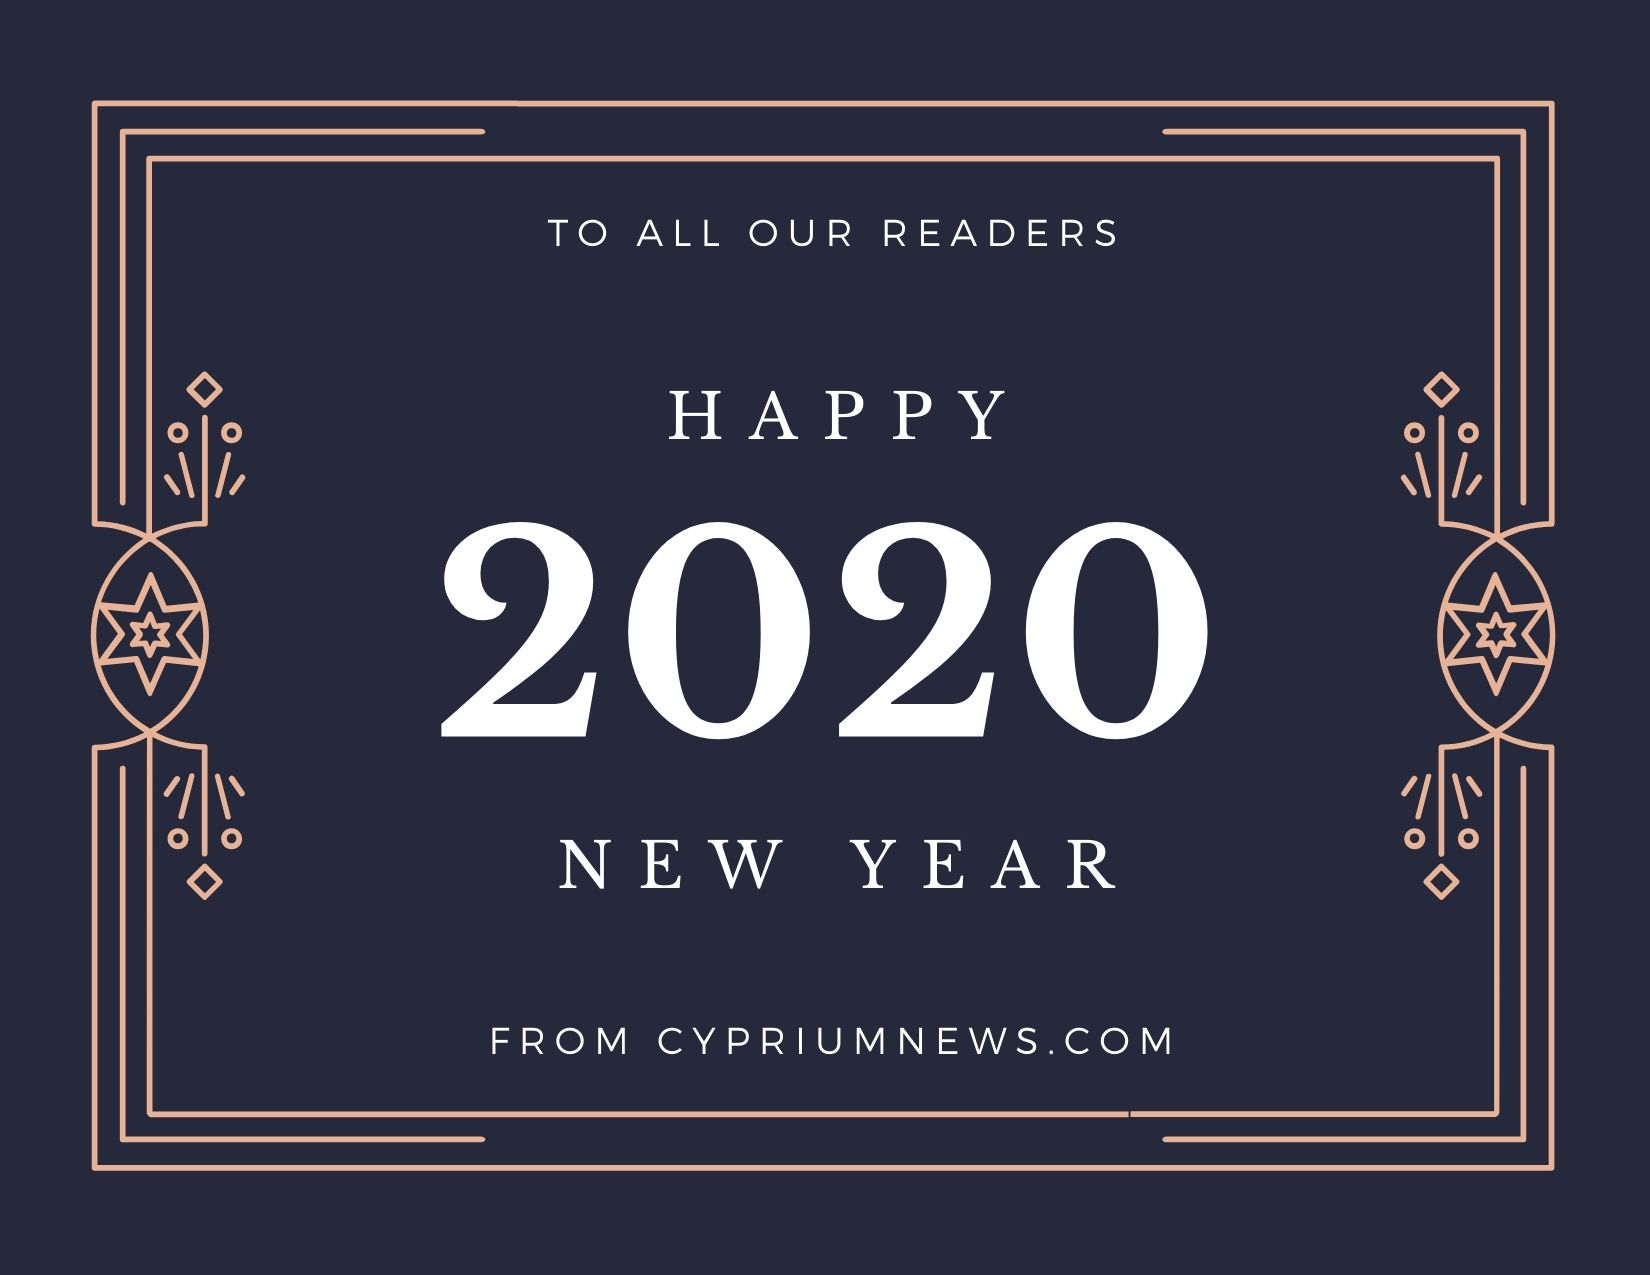 Happy New Year from Cypriumnews.com 1